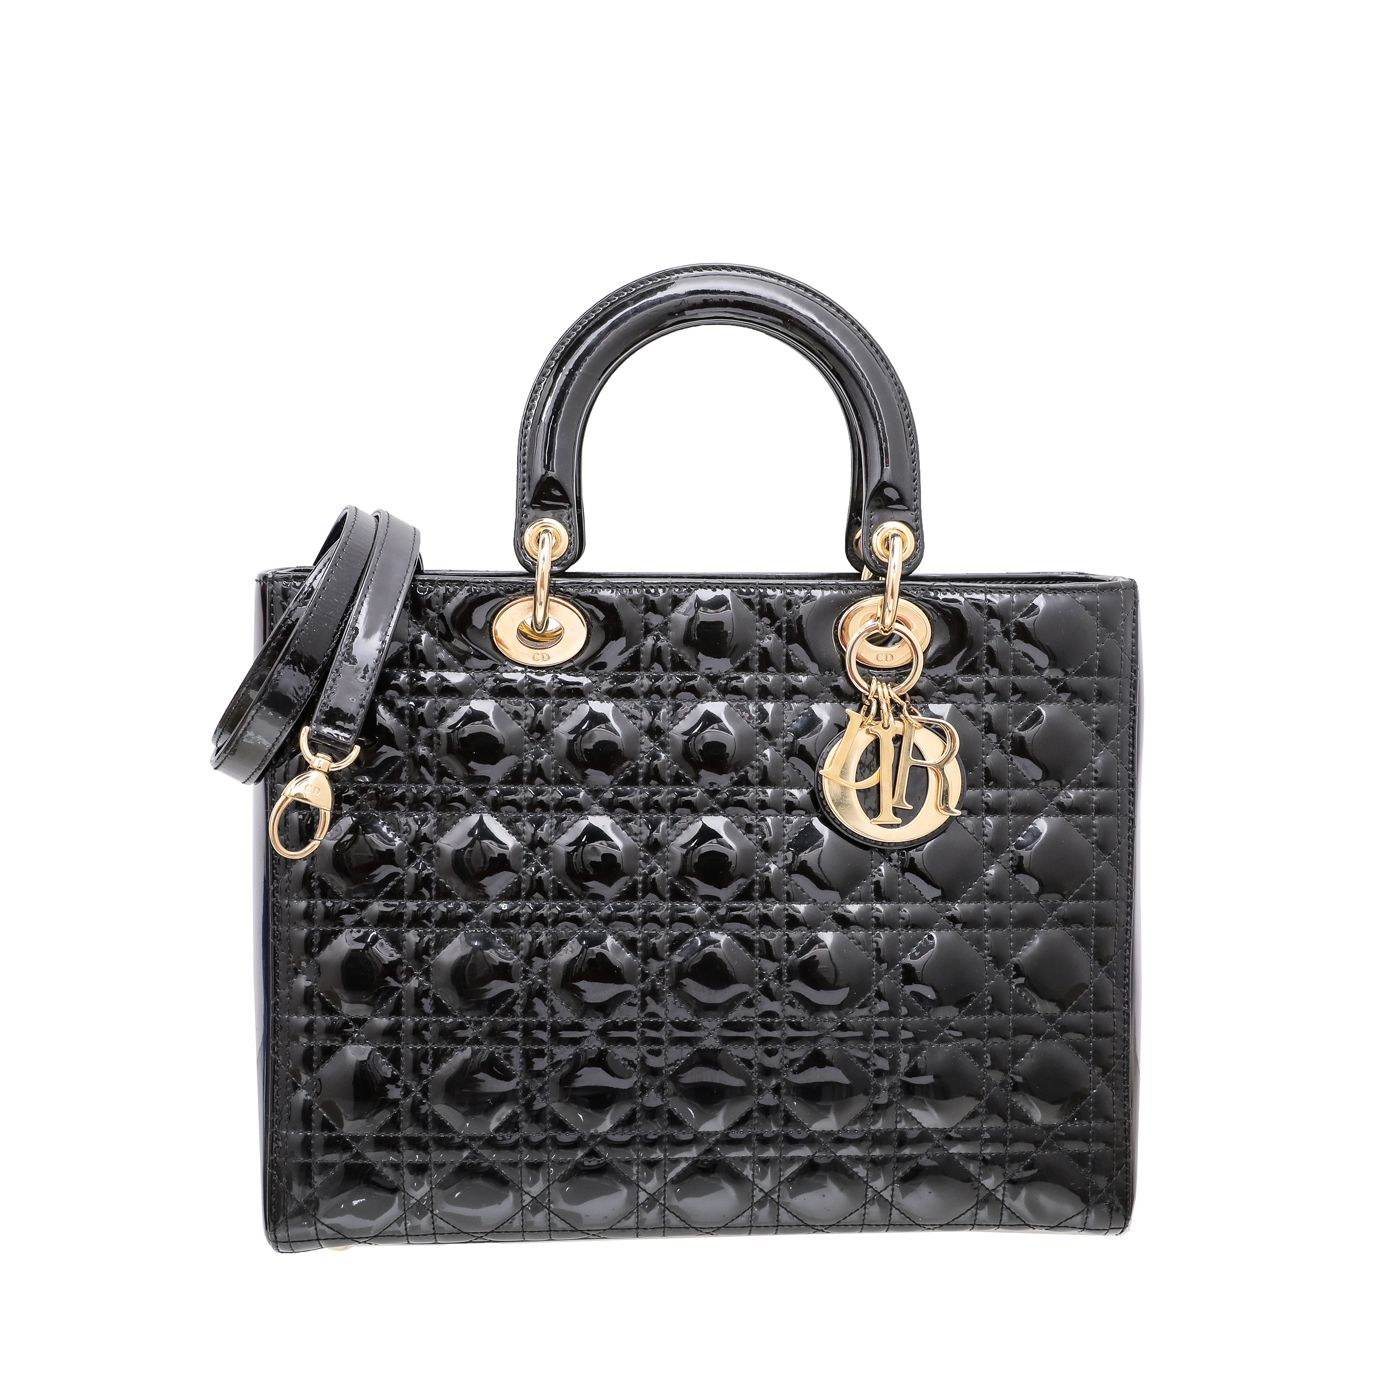 Christian Dior Black Lady Dior Large Bag